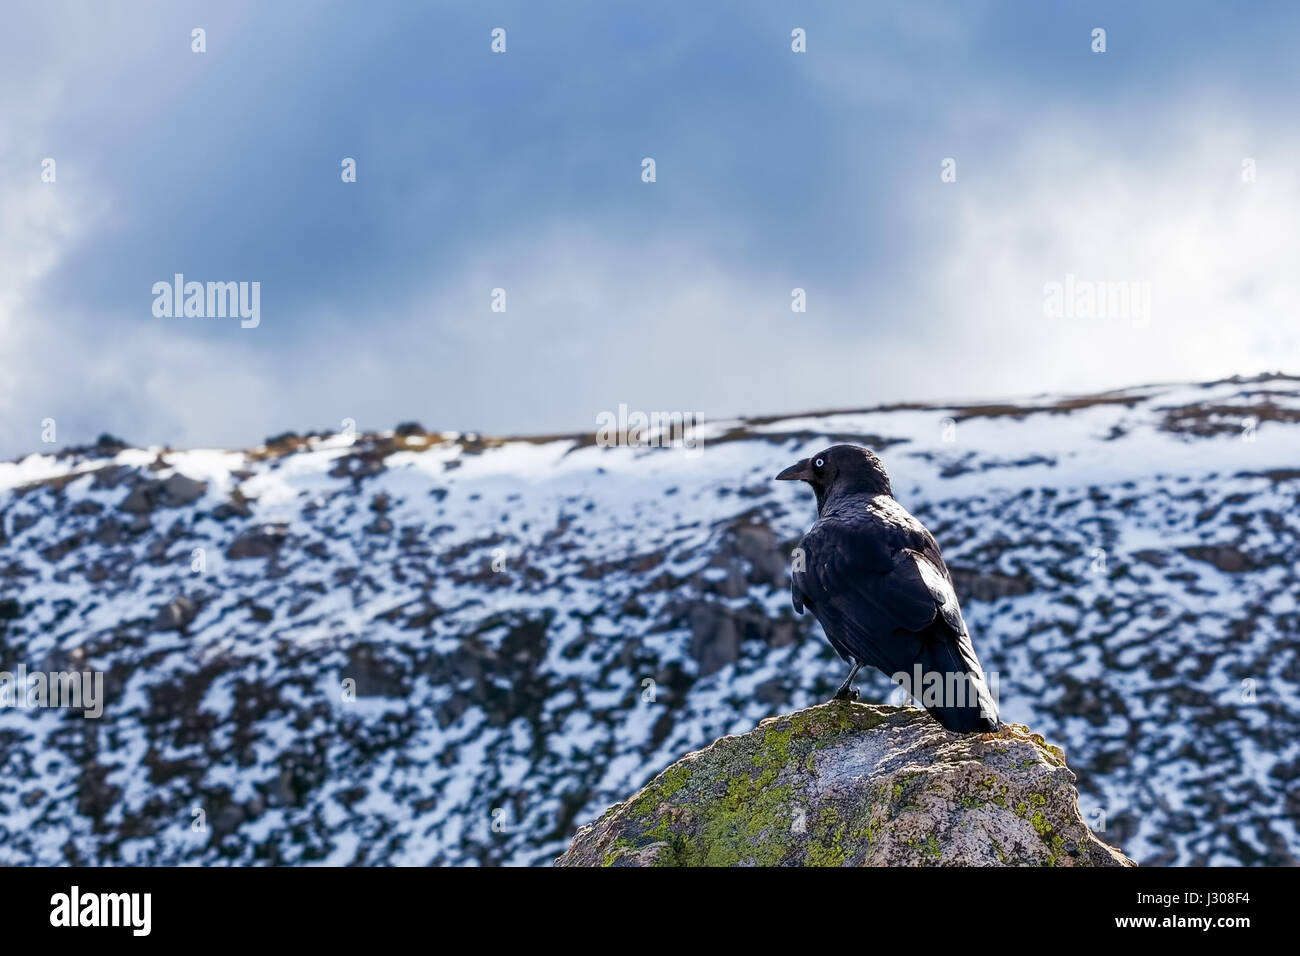 Australian Raven perching on a rock with snowy mountains in the background - Stock Image